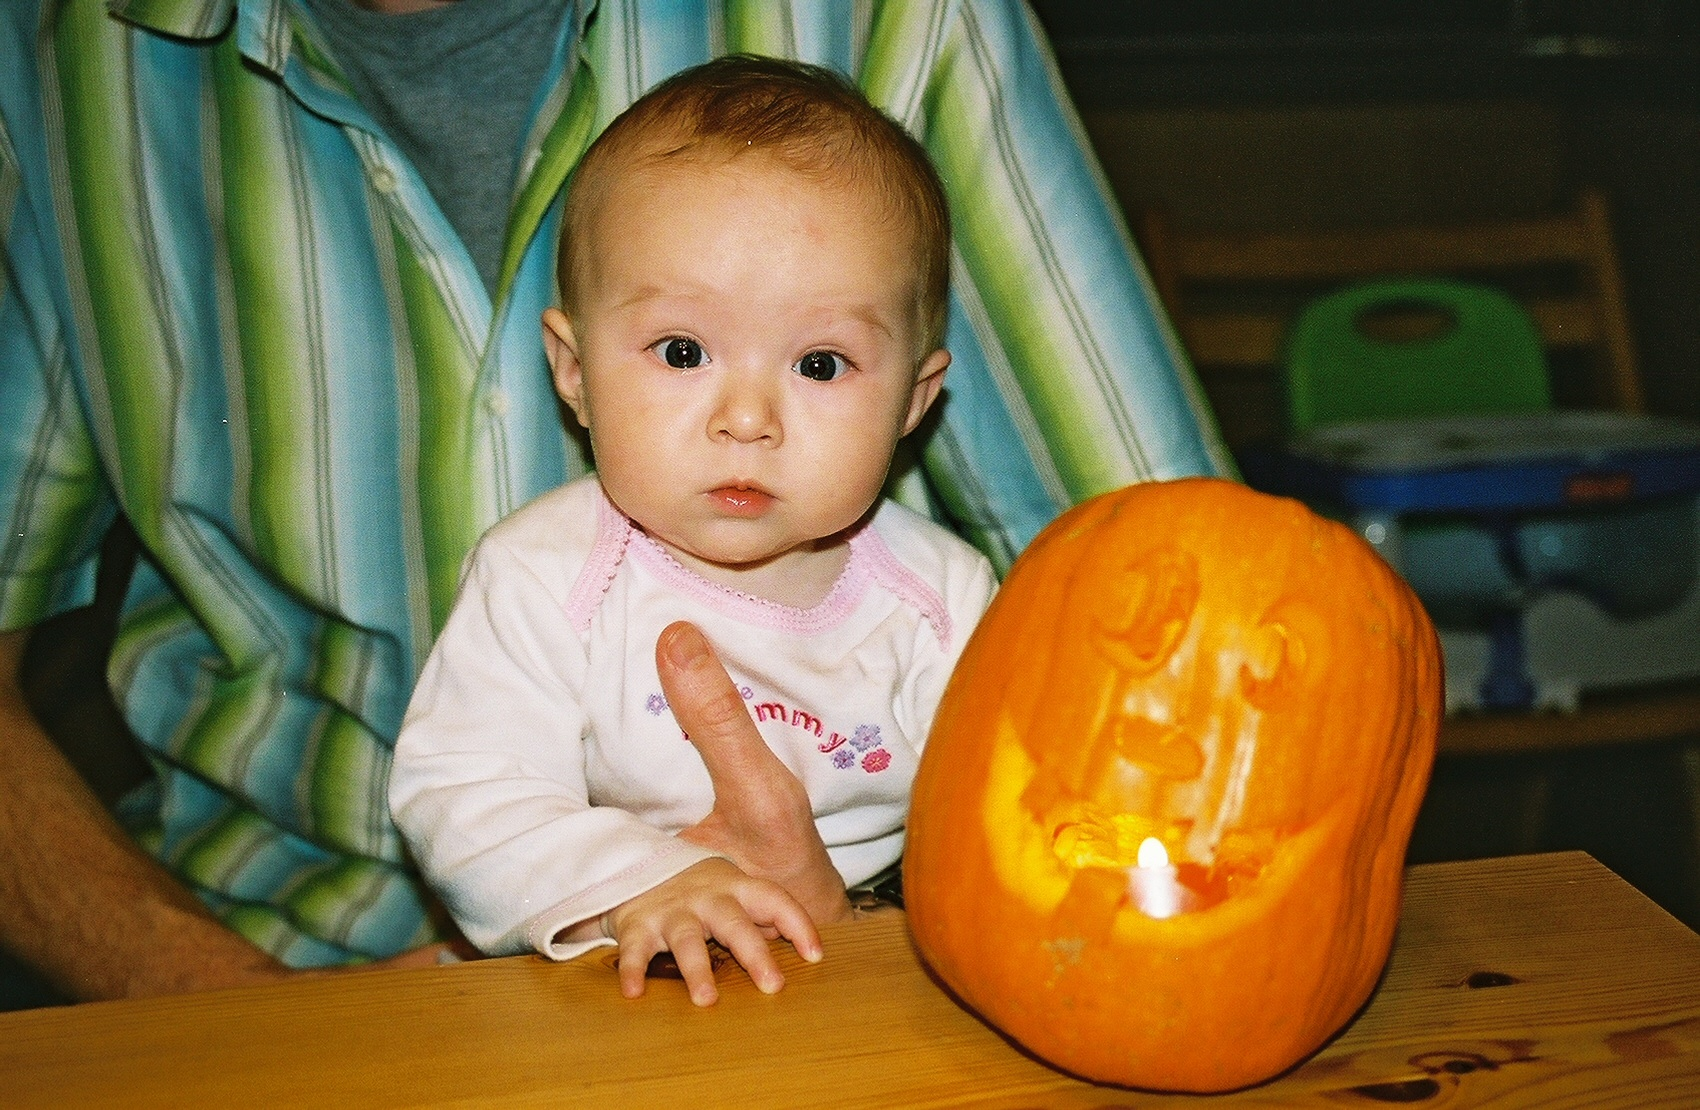 delia and the pumpkin